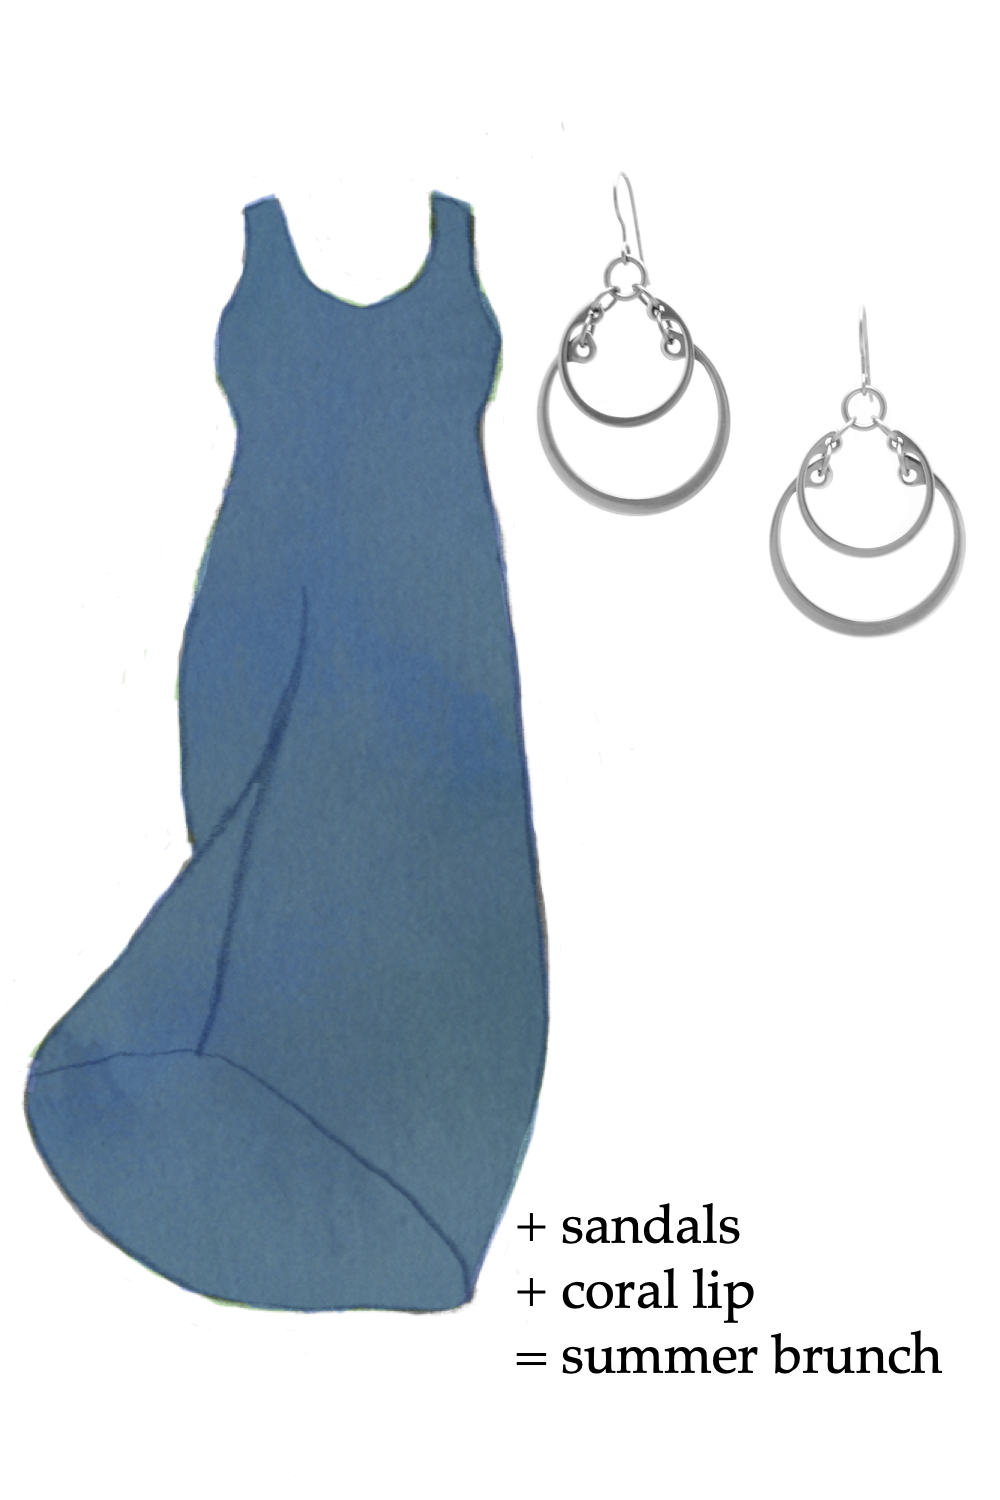 Outfit idea featuring a style sketch of the Athena Dress by Universal Standard in true blue and the Overlapping Graduated Earrings by Wraptillion. Text on image reads: + sandals + coral lip = summer brunch.